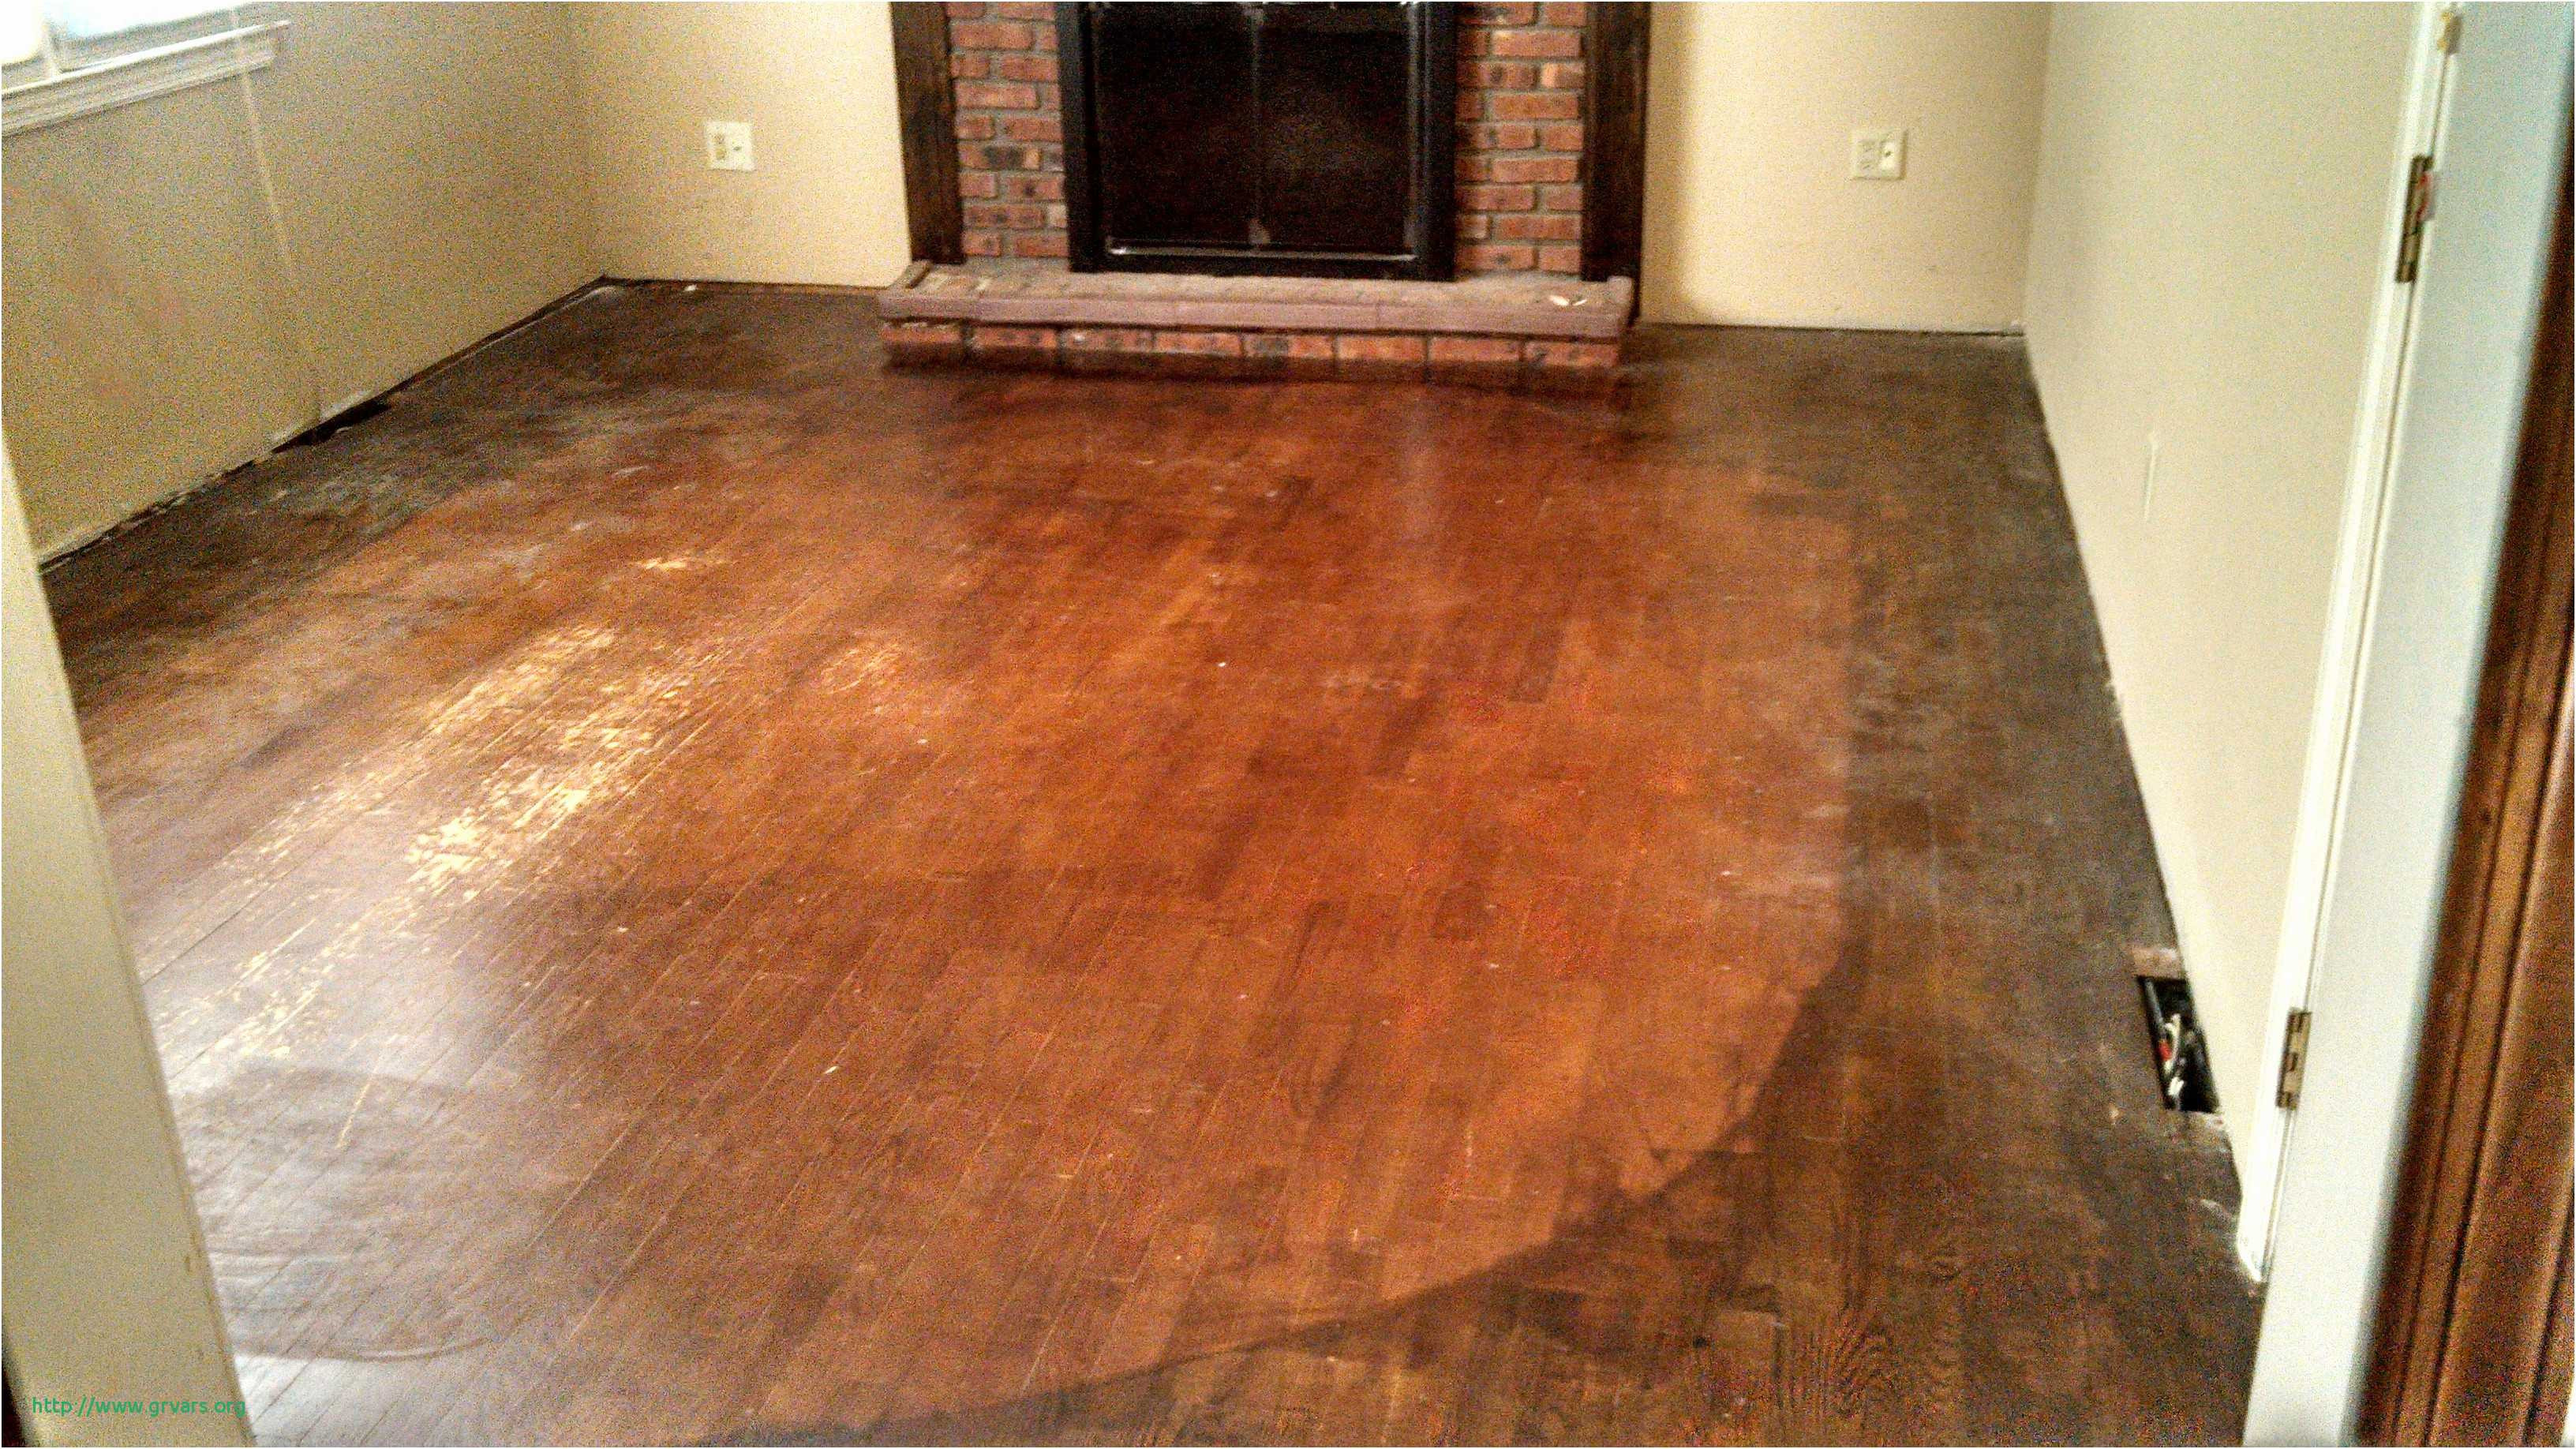 Hardwood Floor Refinishing Erie Pa Of Hardwood Flooring Erie Pa Luxe 20 ordinary Refinish Hardwood Stairs Pertaining to Hardwood Flooring Erie Pa Luxe 20 ordinary Refinish Hardwood Stairs